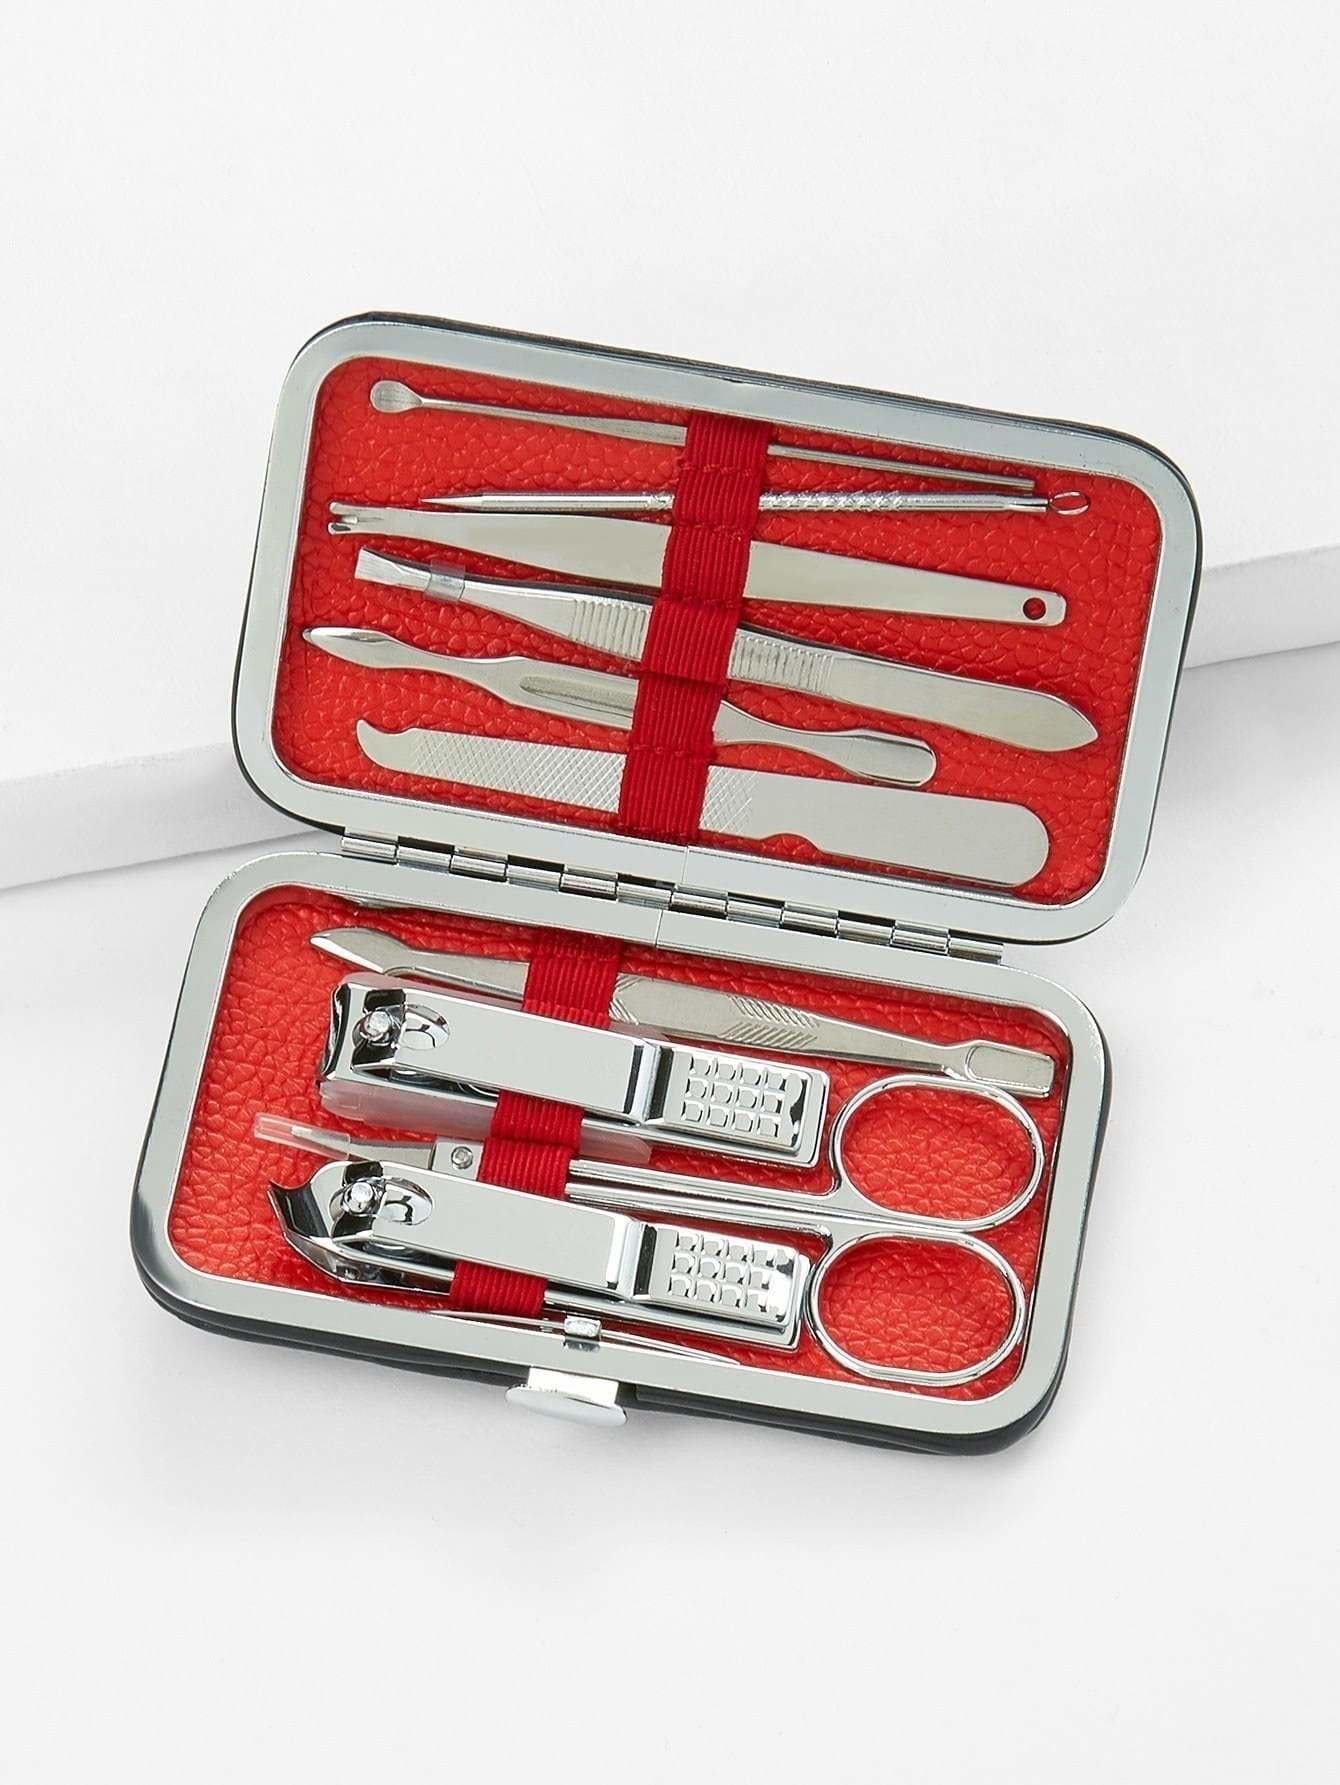 Nail Cutters Set With Bag - Daily Necessities